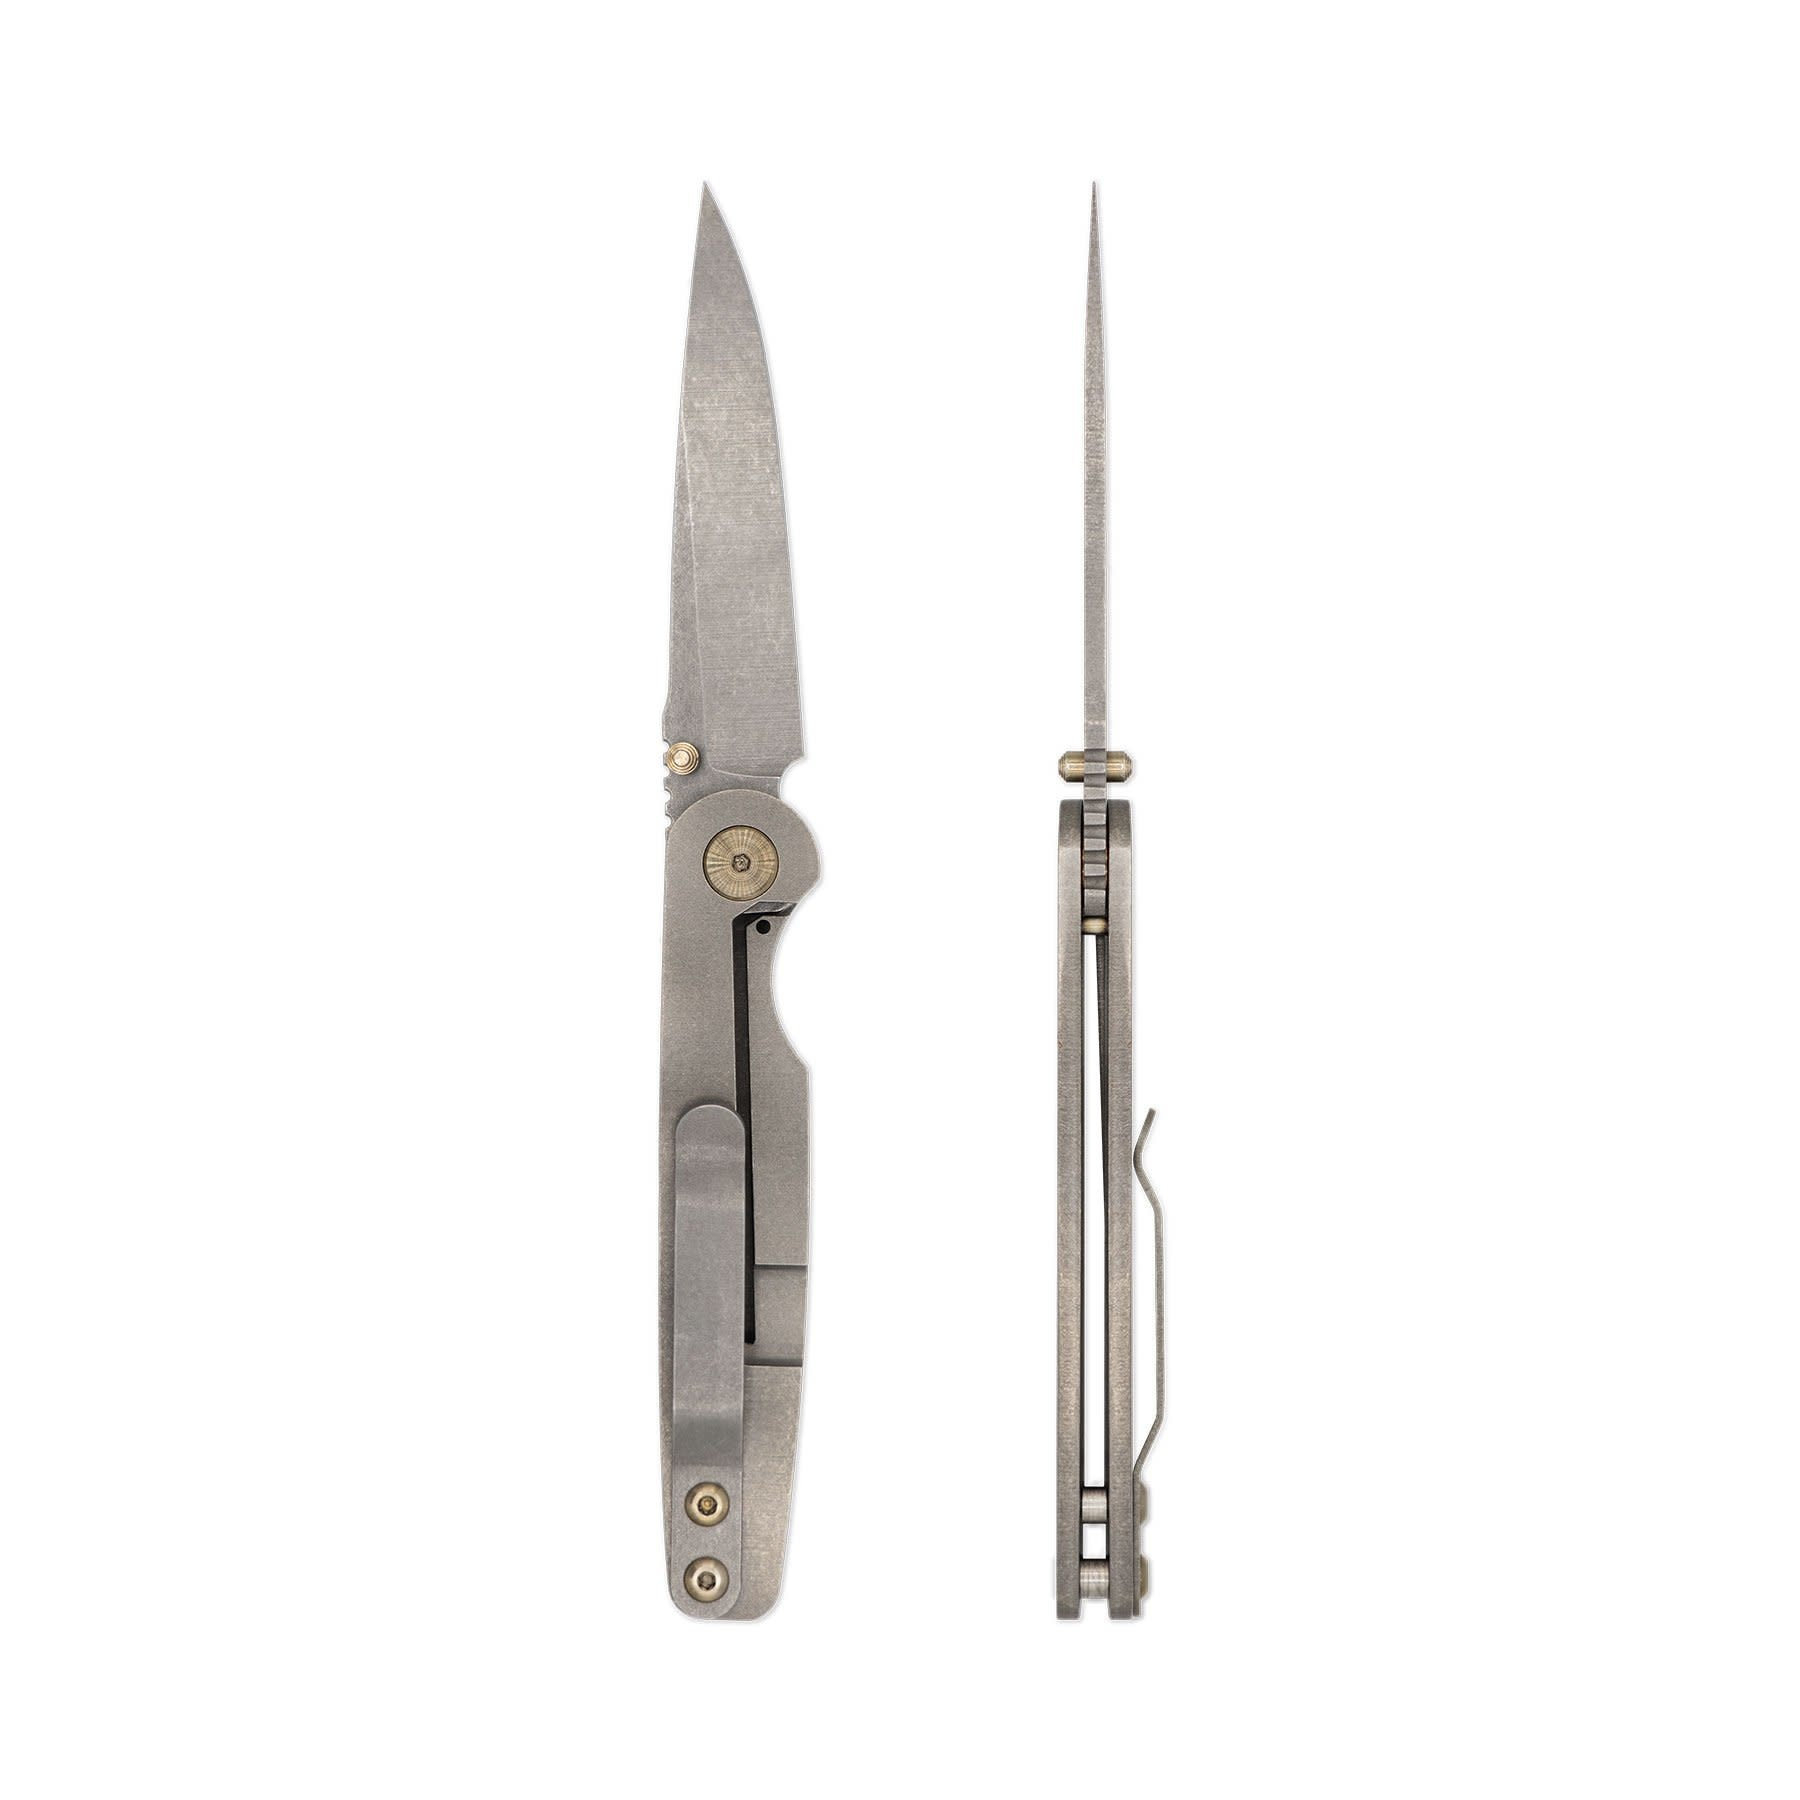 Toor Knives Suitor FL154S - Stone